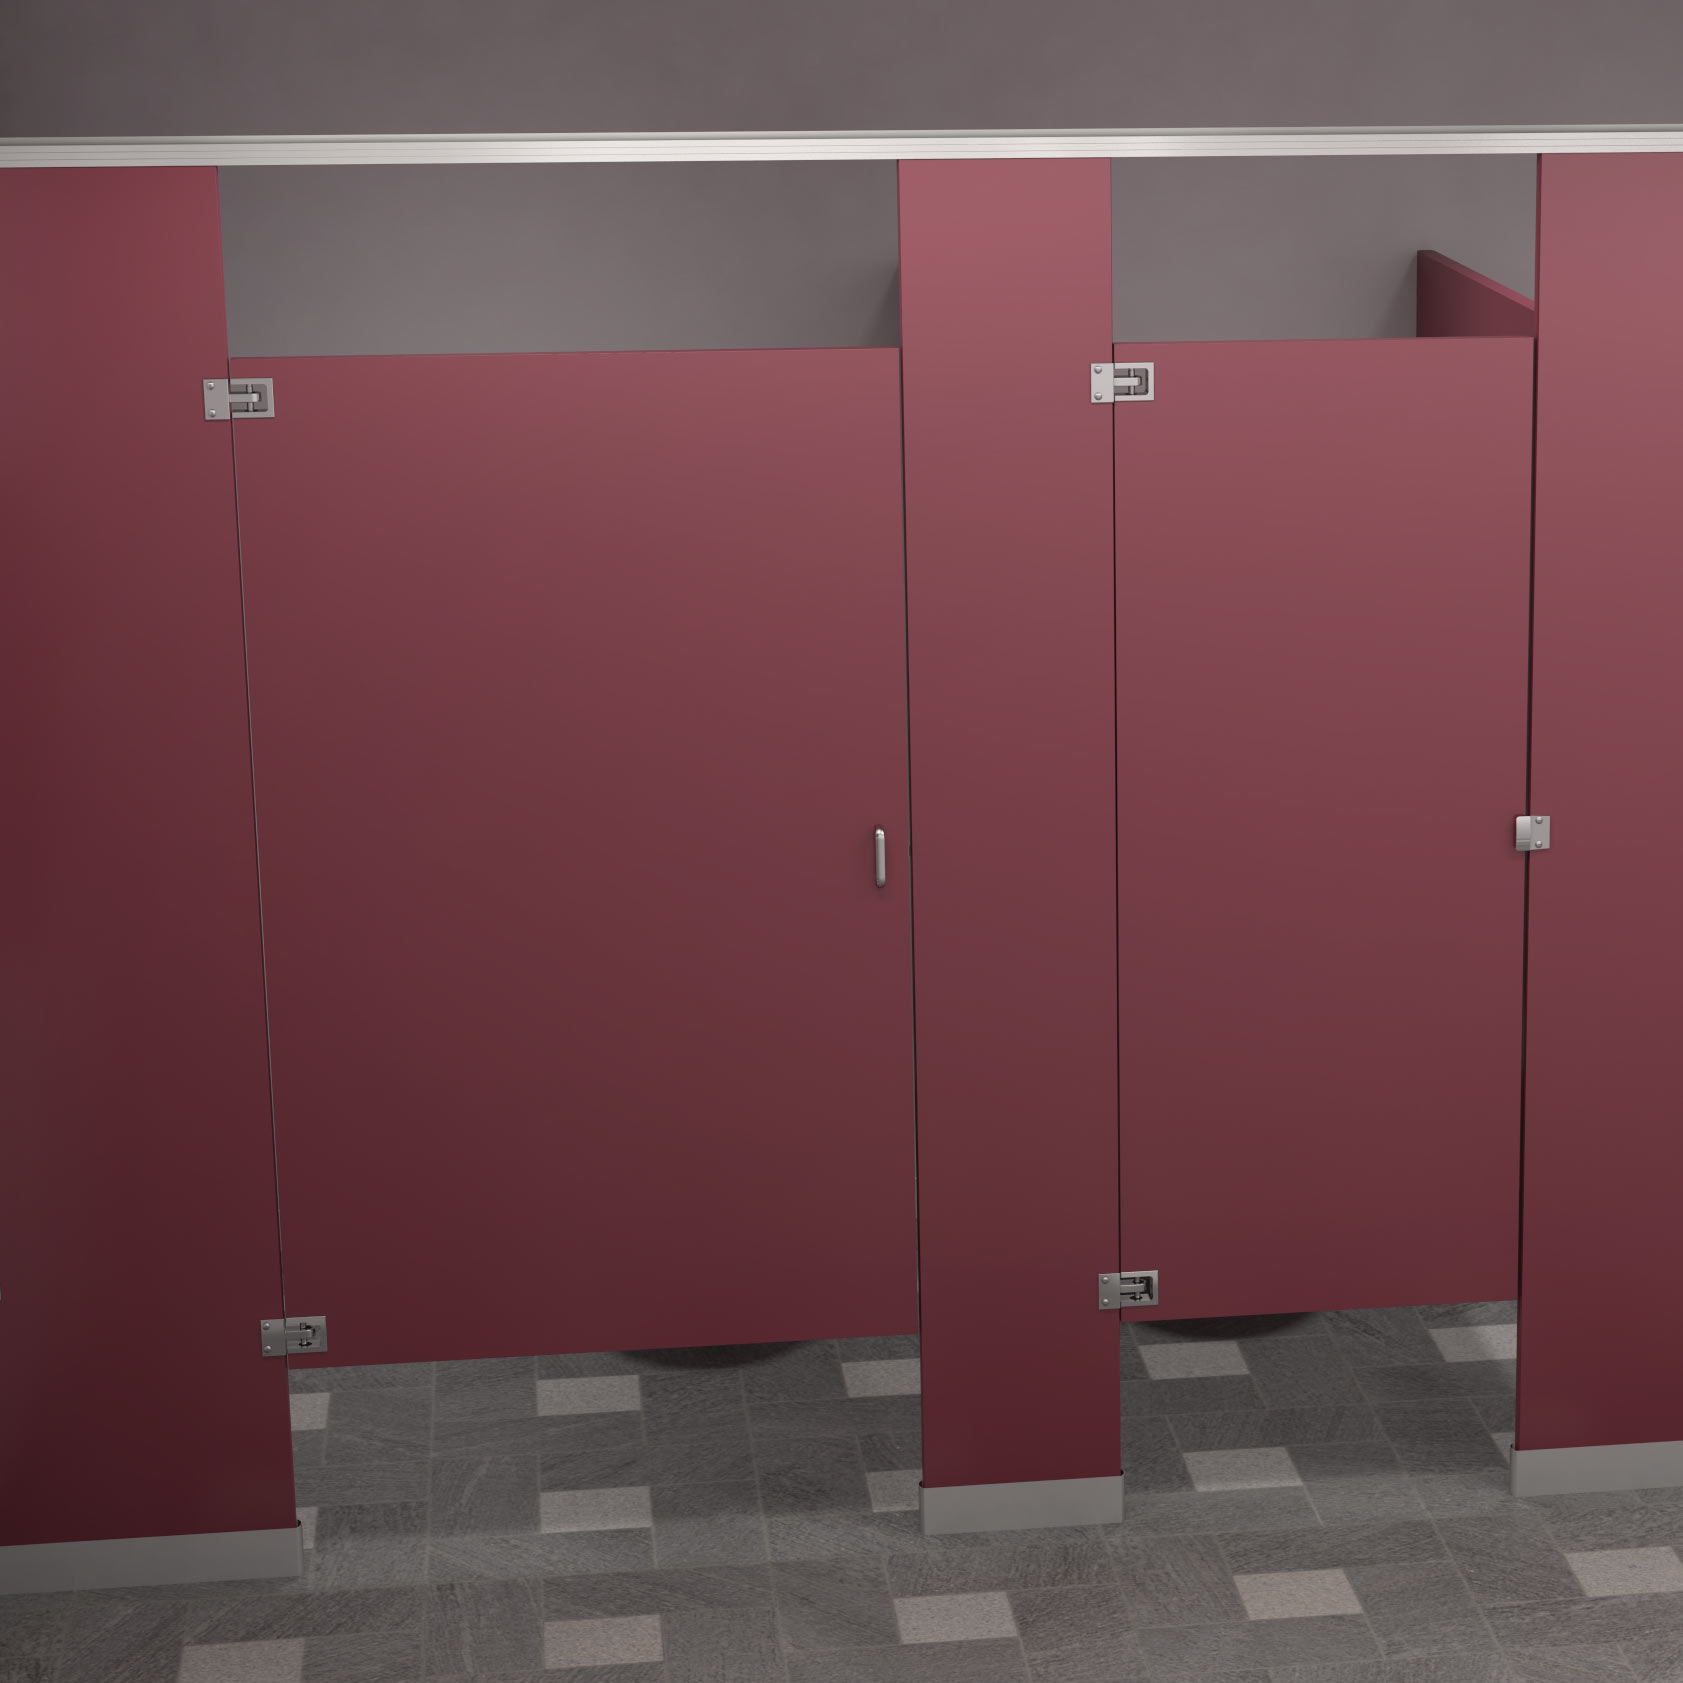 Privacy Compartment Materials For Public Restrooms For Sale - Public bathroom stall dividers